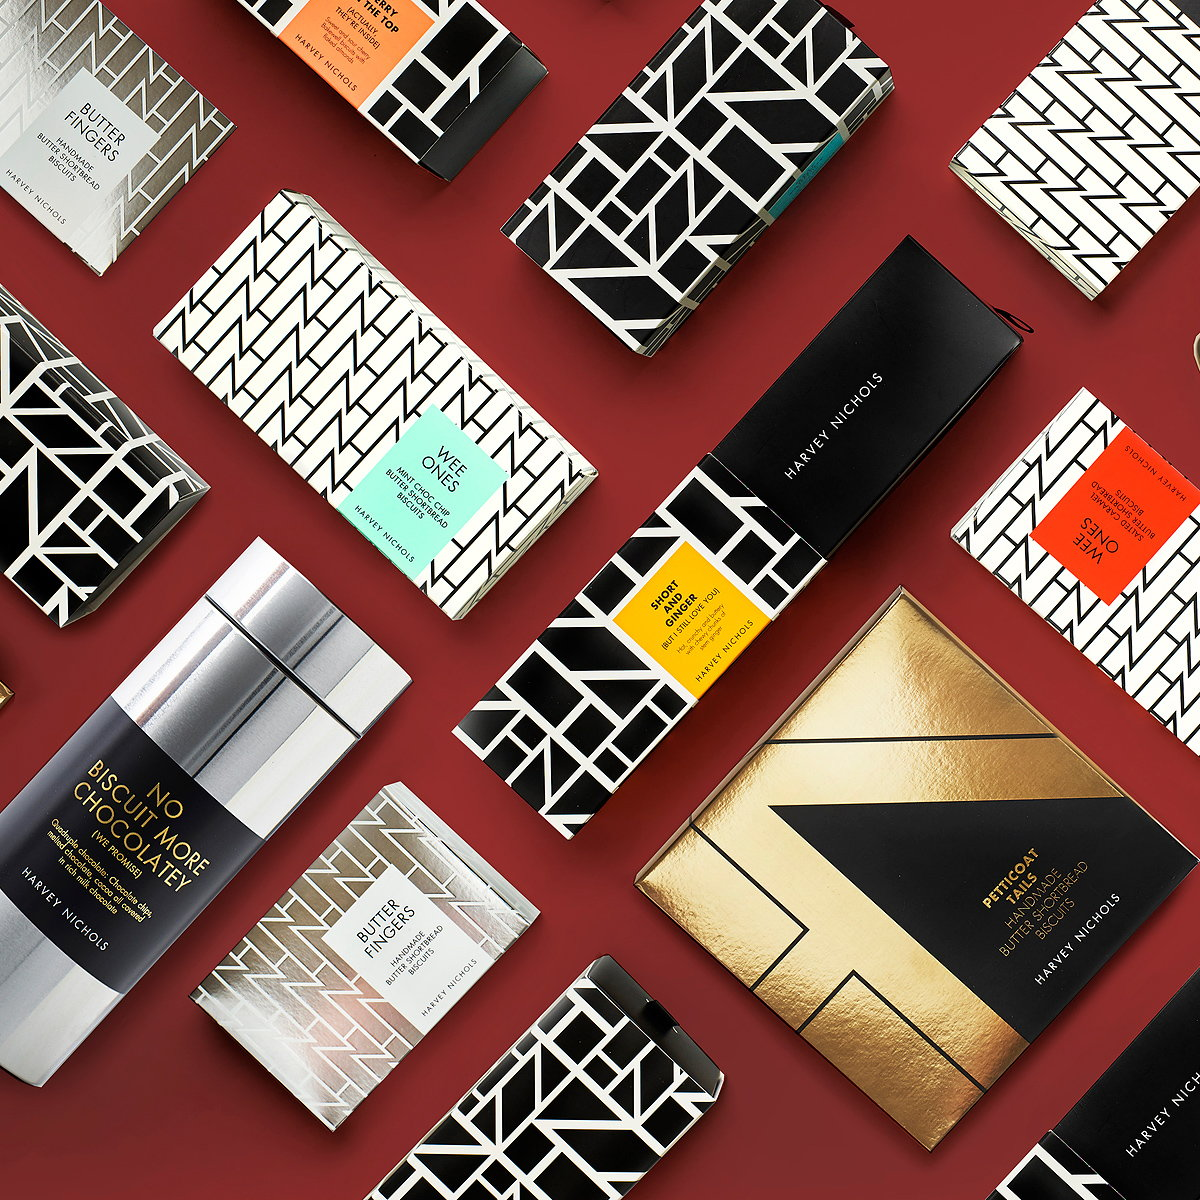 Smith&+Village Unveils Iconic Harvey Nichols Food Collection